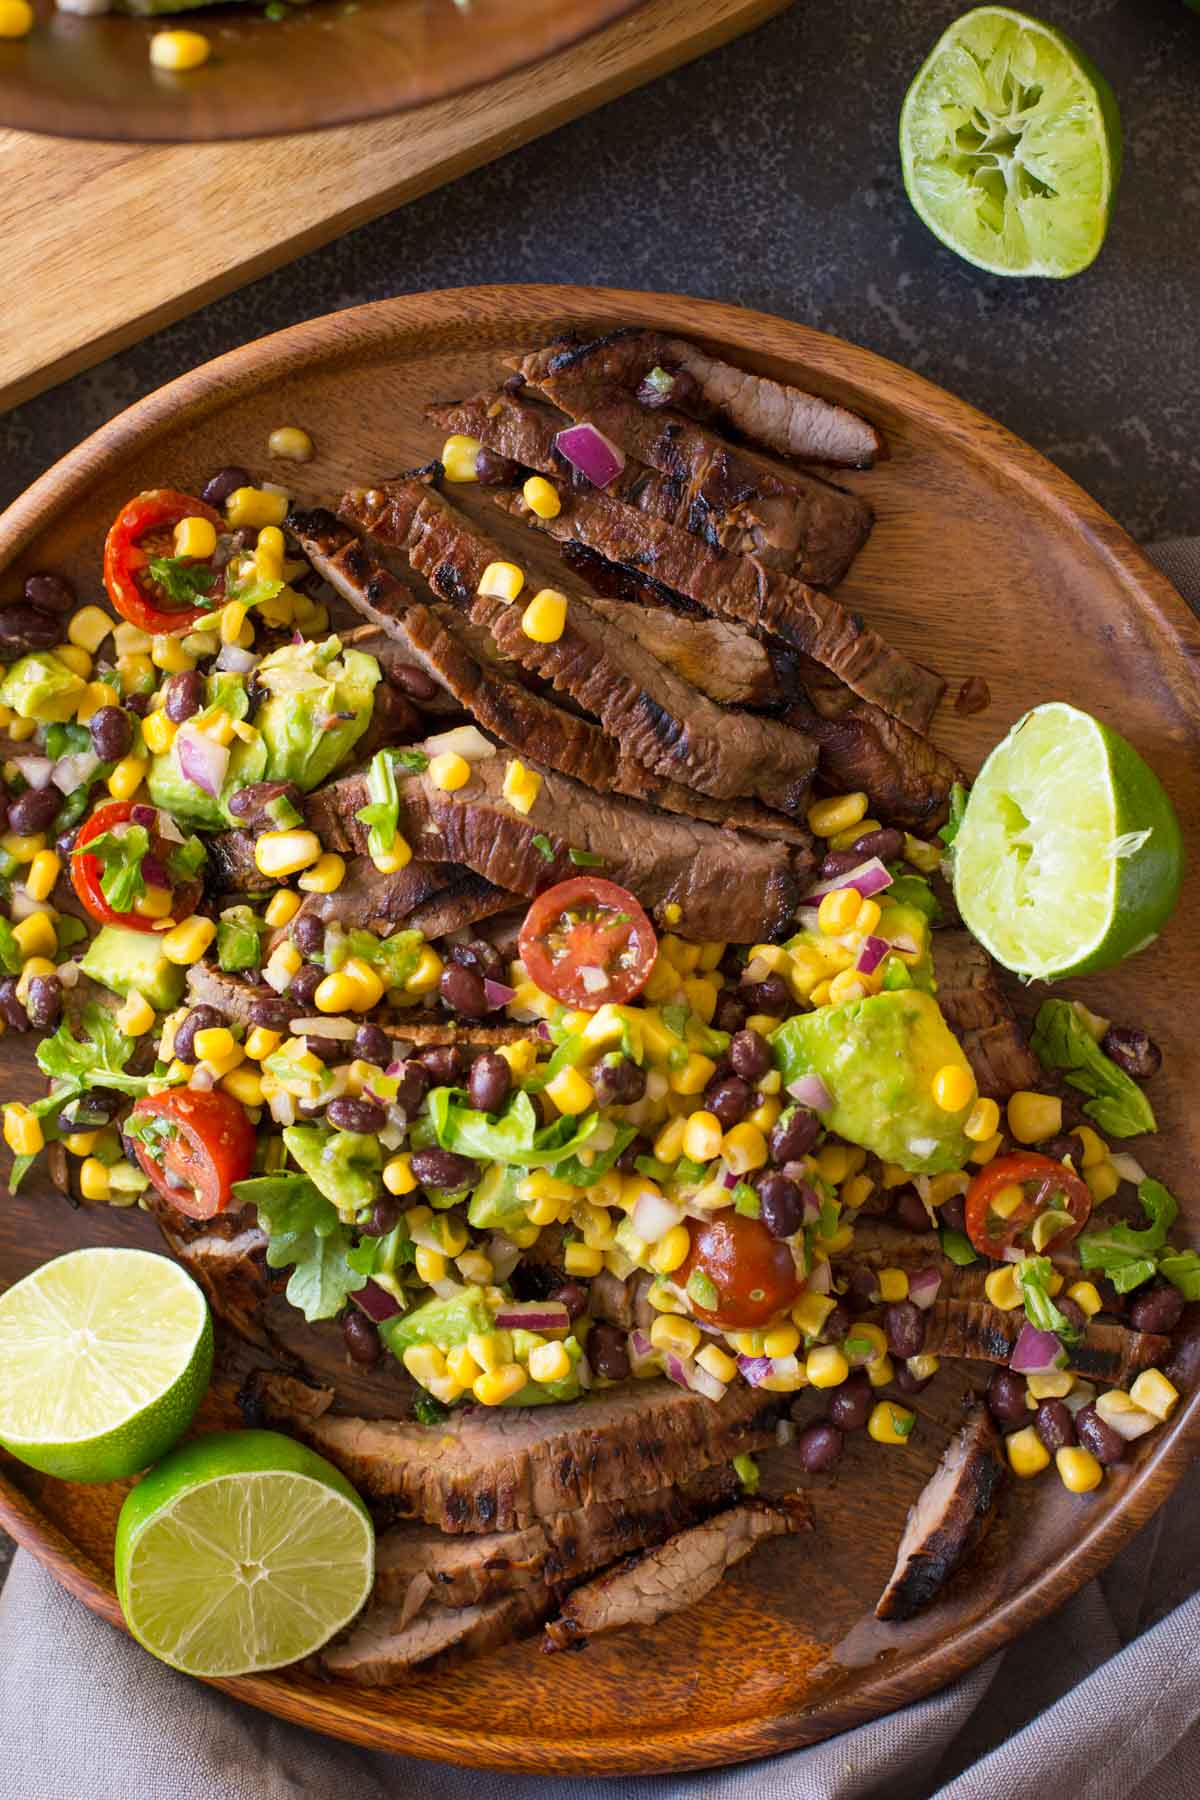 A large wood plate of sliced grilled marinated flank steak and avocado salad with limes cut in half.